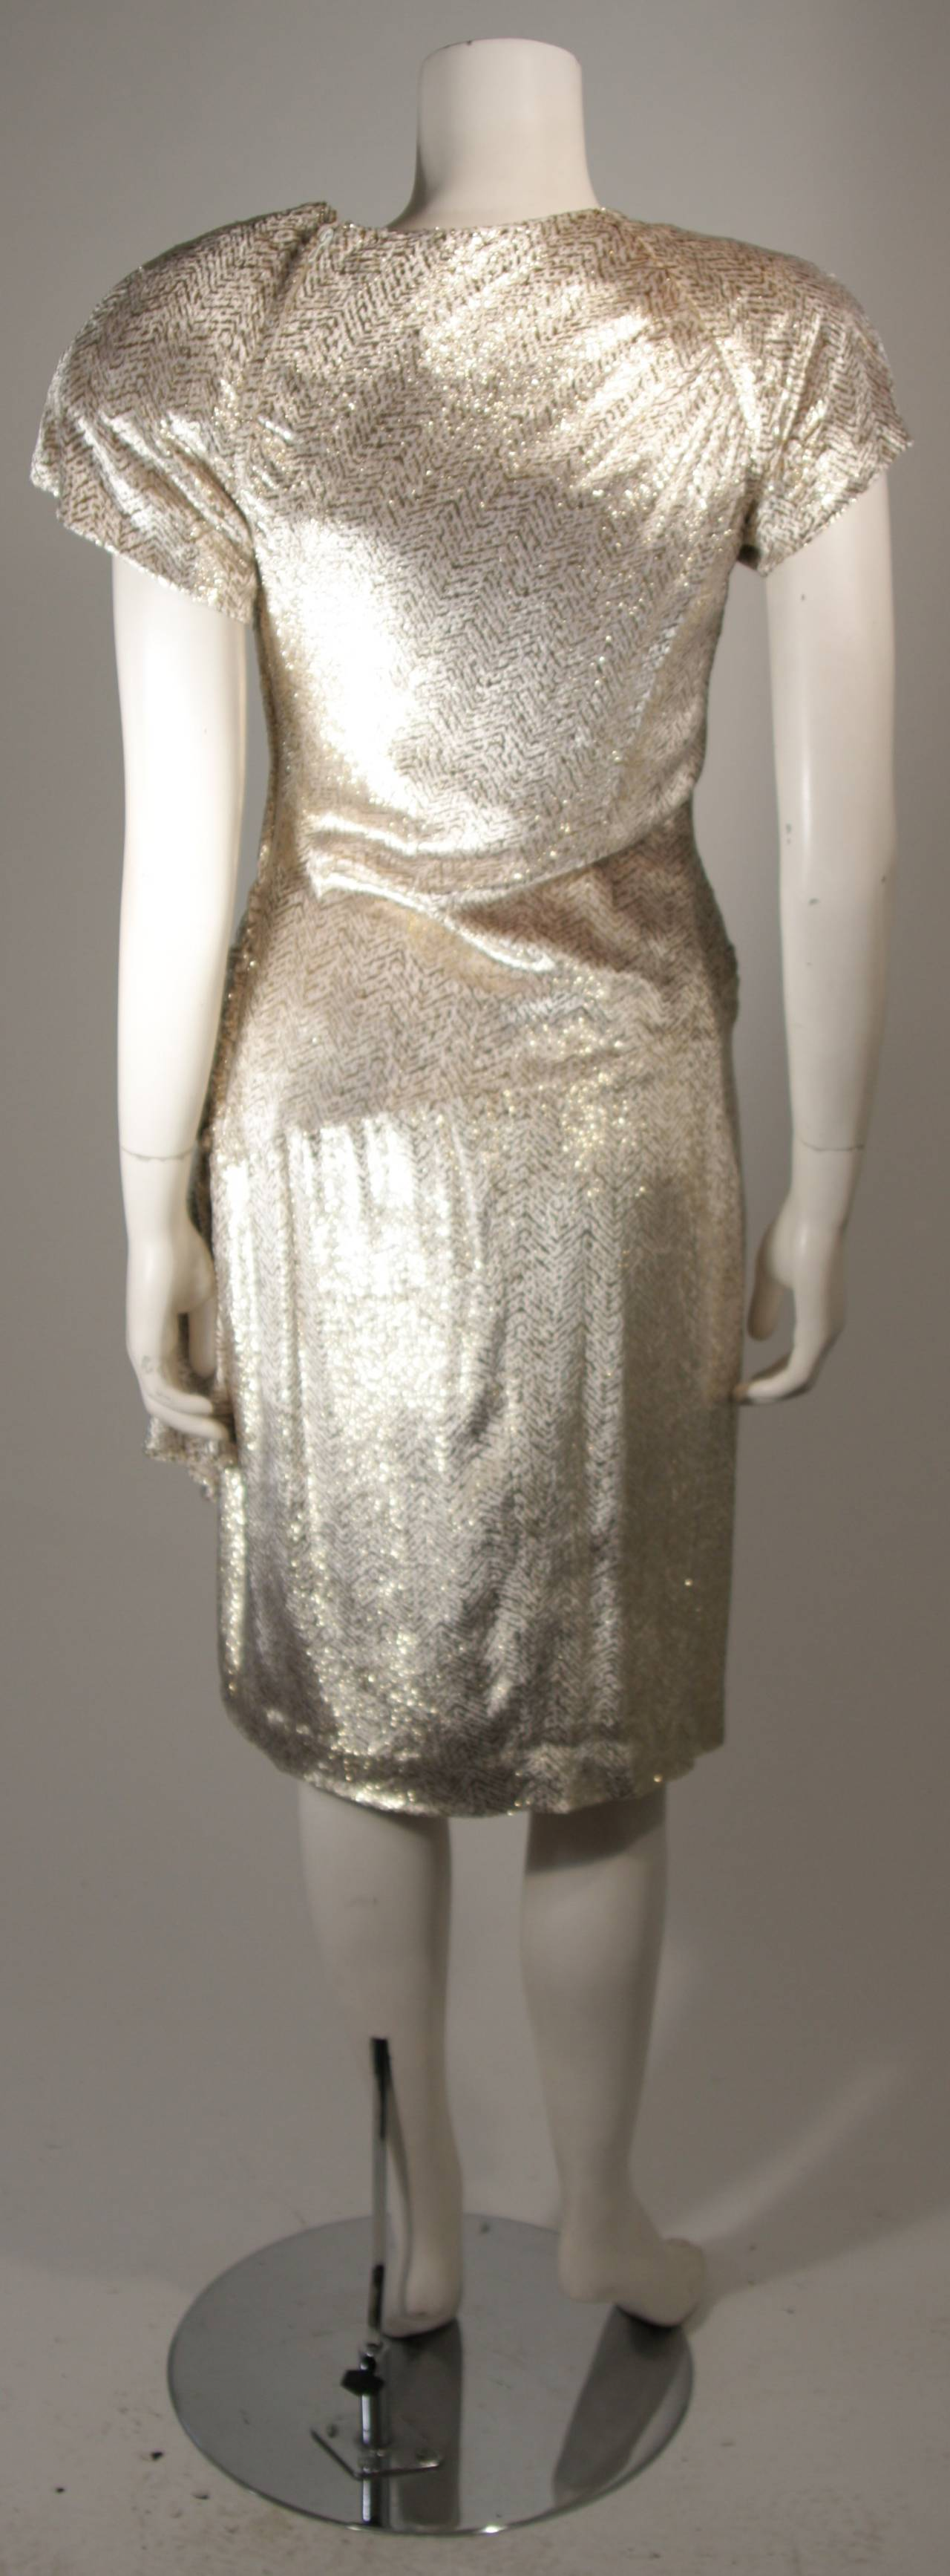 Vicky Tiel Ivory and Gold Velvet Texture Cocktail Dress Size 38 8